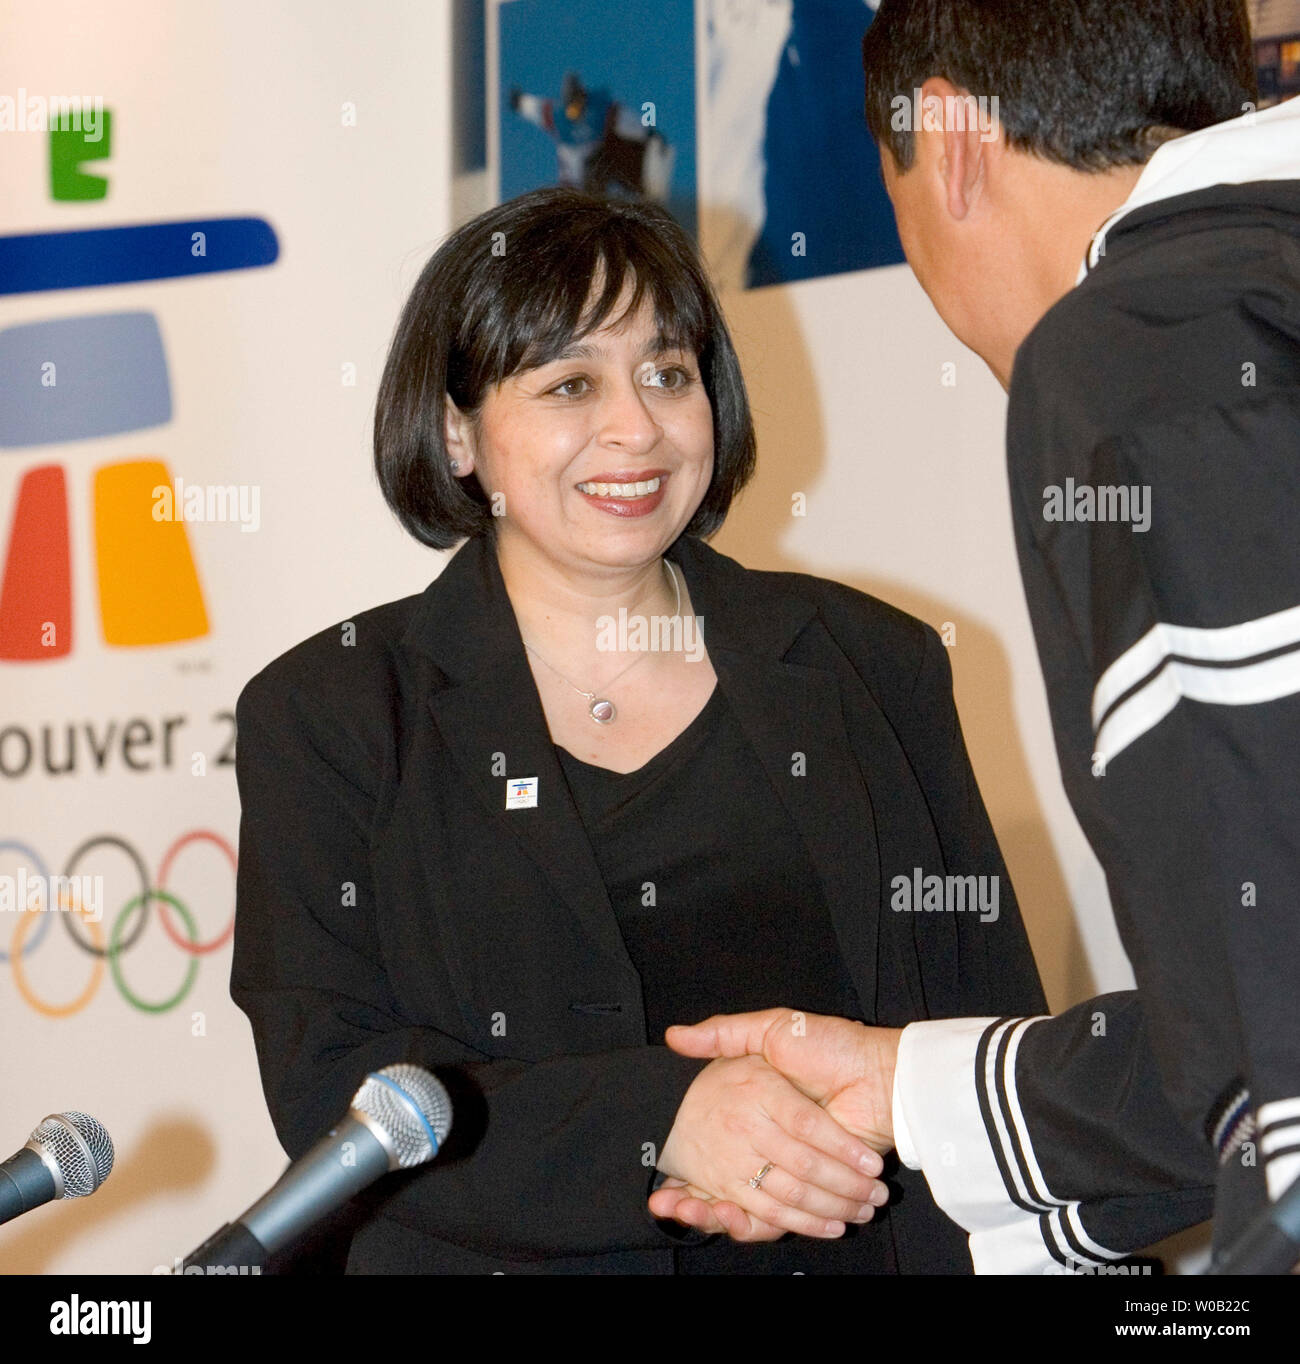 Logo designer Elena Rivera MacGregor (L.) shakes hands with Paul Okalik, Premier of the territory of Nunavut at a press conference after the unveiling of Vancouver 2010's new Olympic emblem 'Ilanaaq' an inukshuk during a ceremony held at Vancouver's GM Place, April 23, 2005.   ( UPI Photo / Heinz Ruckemann ) - Stock Image